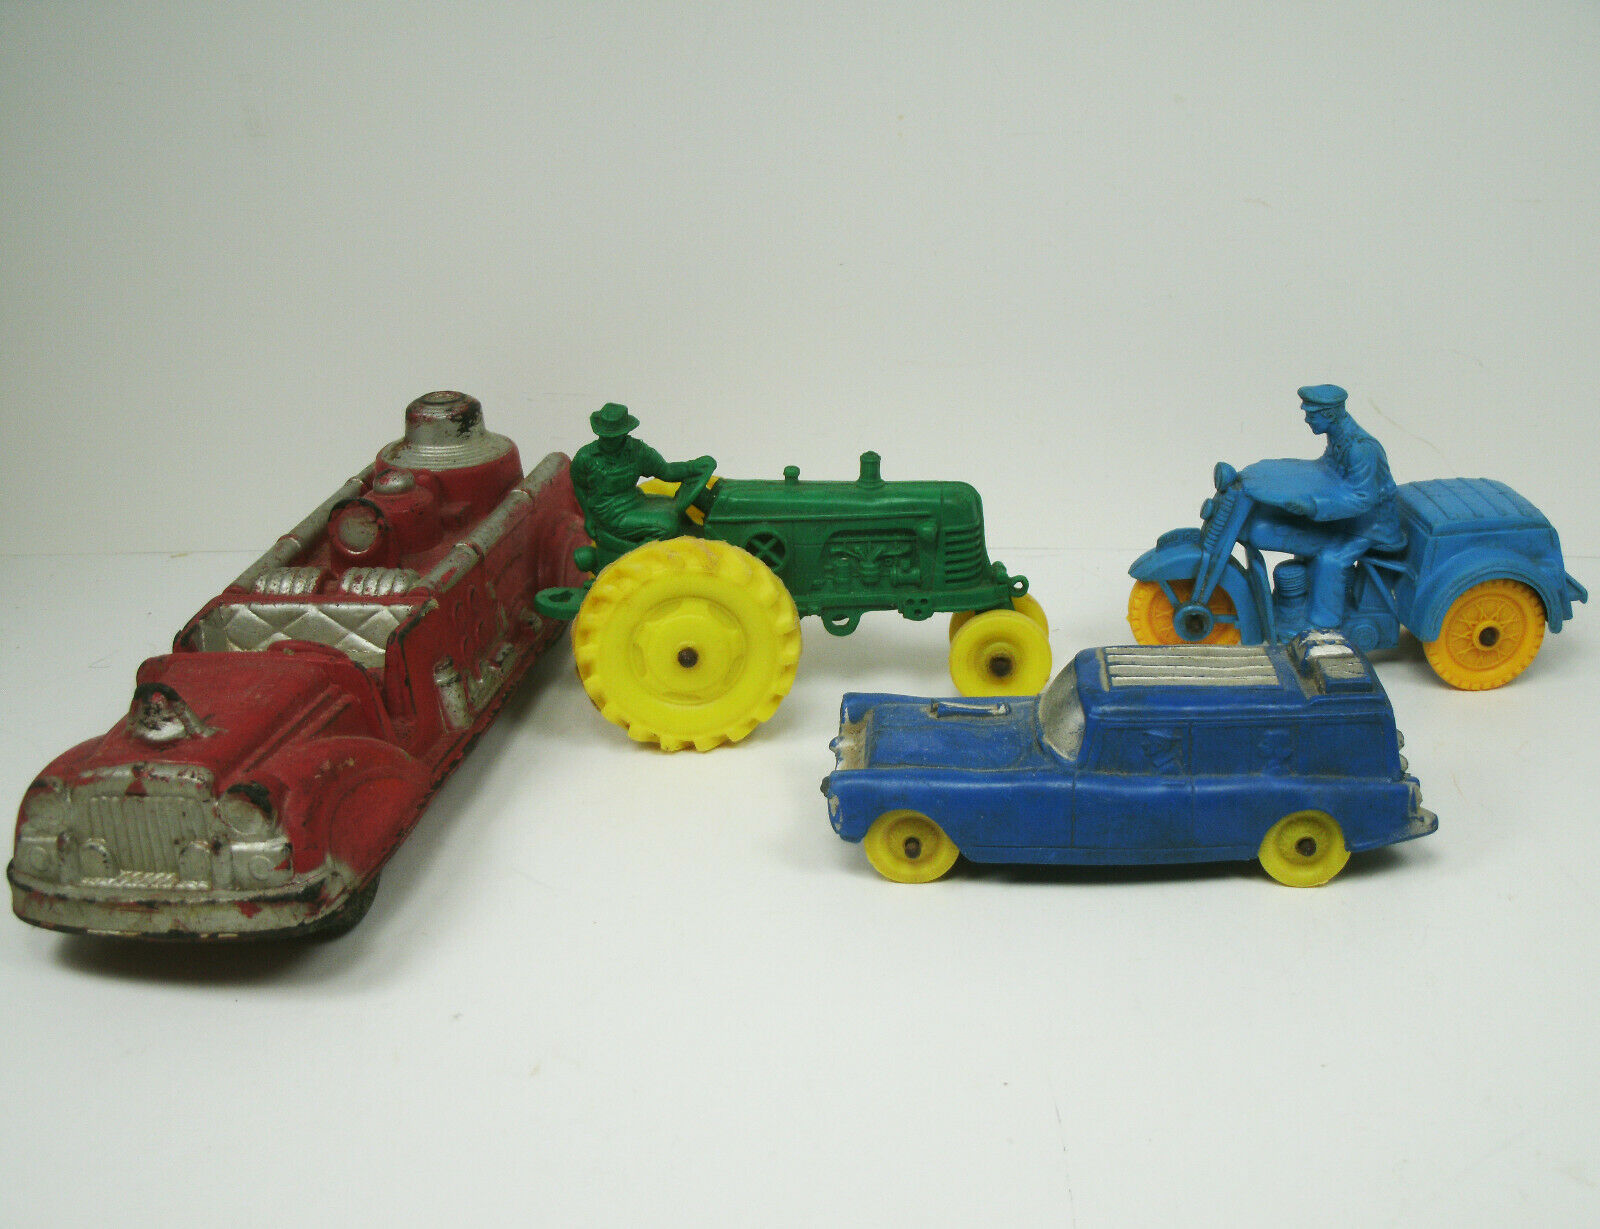 Auburn Rubber Fire Truck Station Wagon Green Yellow Tractor and bluee Yellow Moto